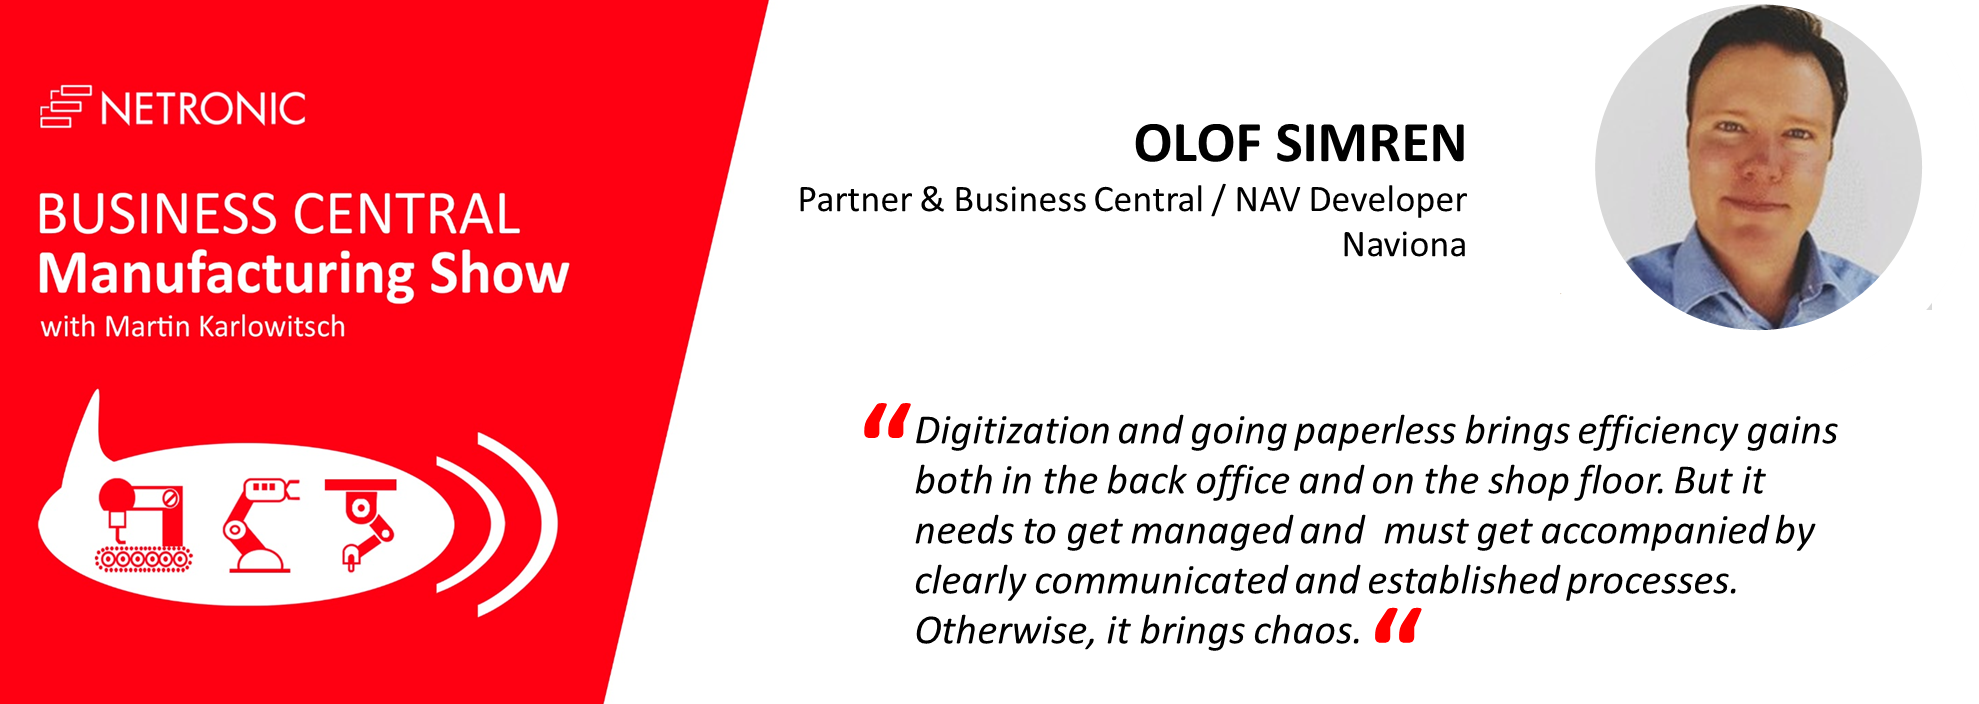 Business Central Manufacturing Shwow - Olof Simren - Quote